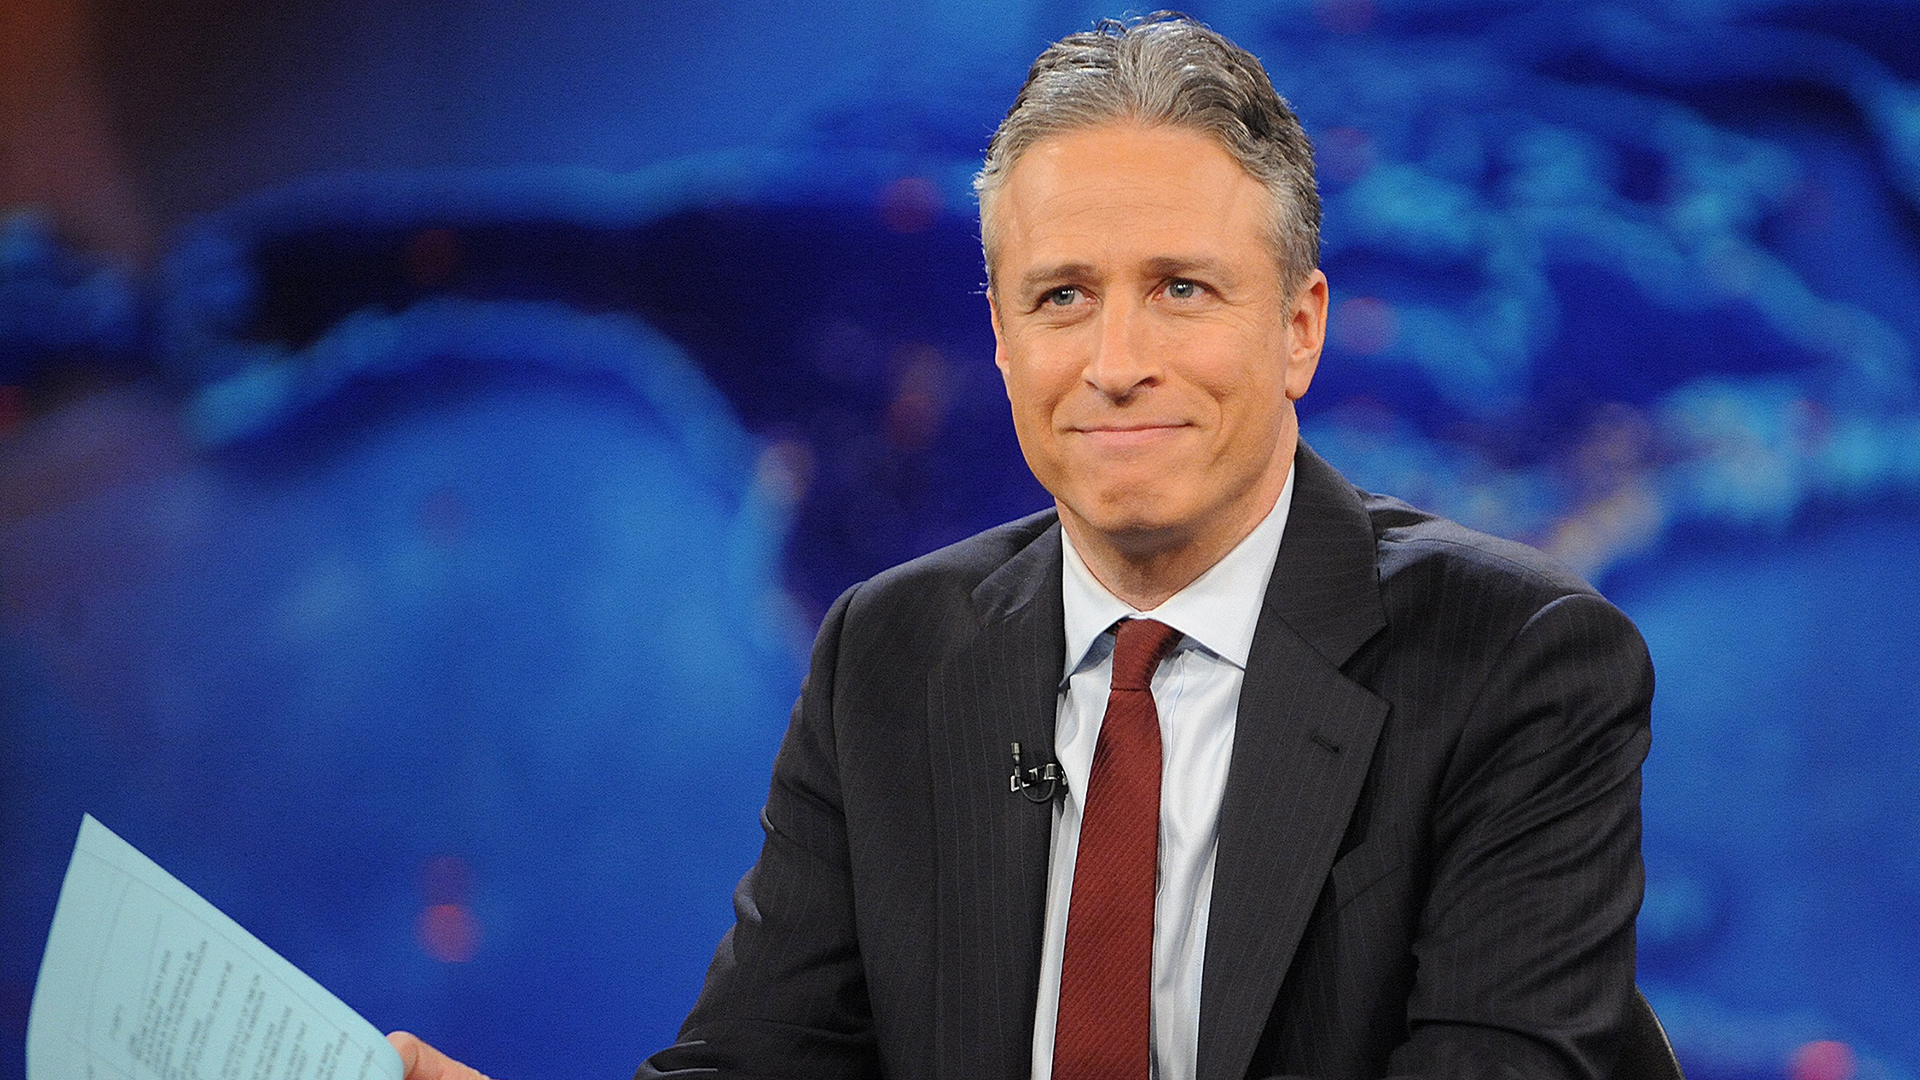 Get ready to laugh! Jon Stewart reveals final 3 'Daily Show' guests